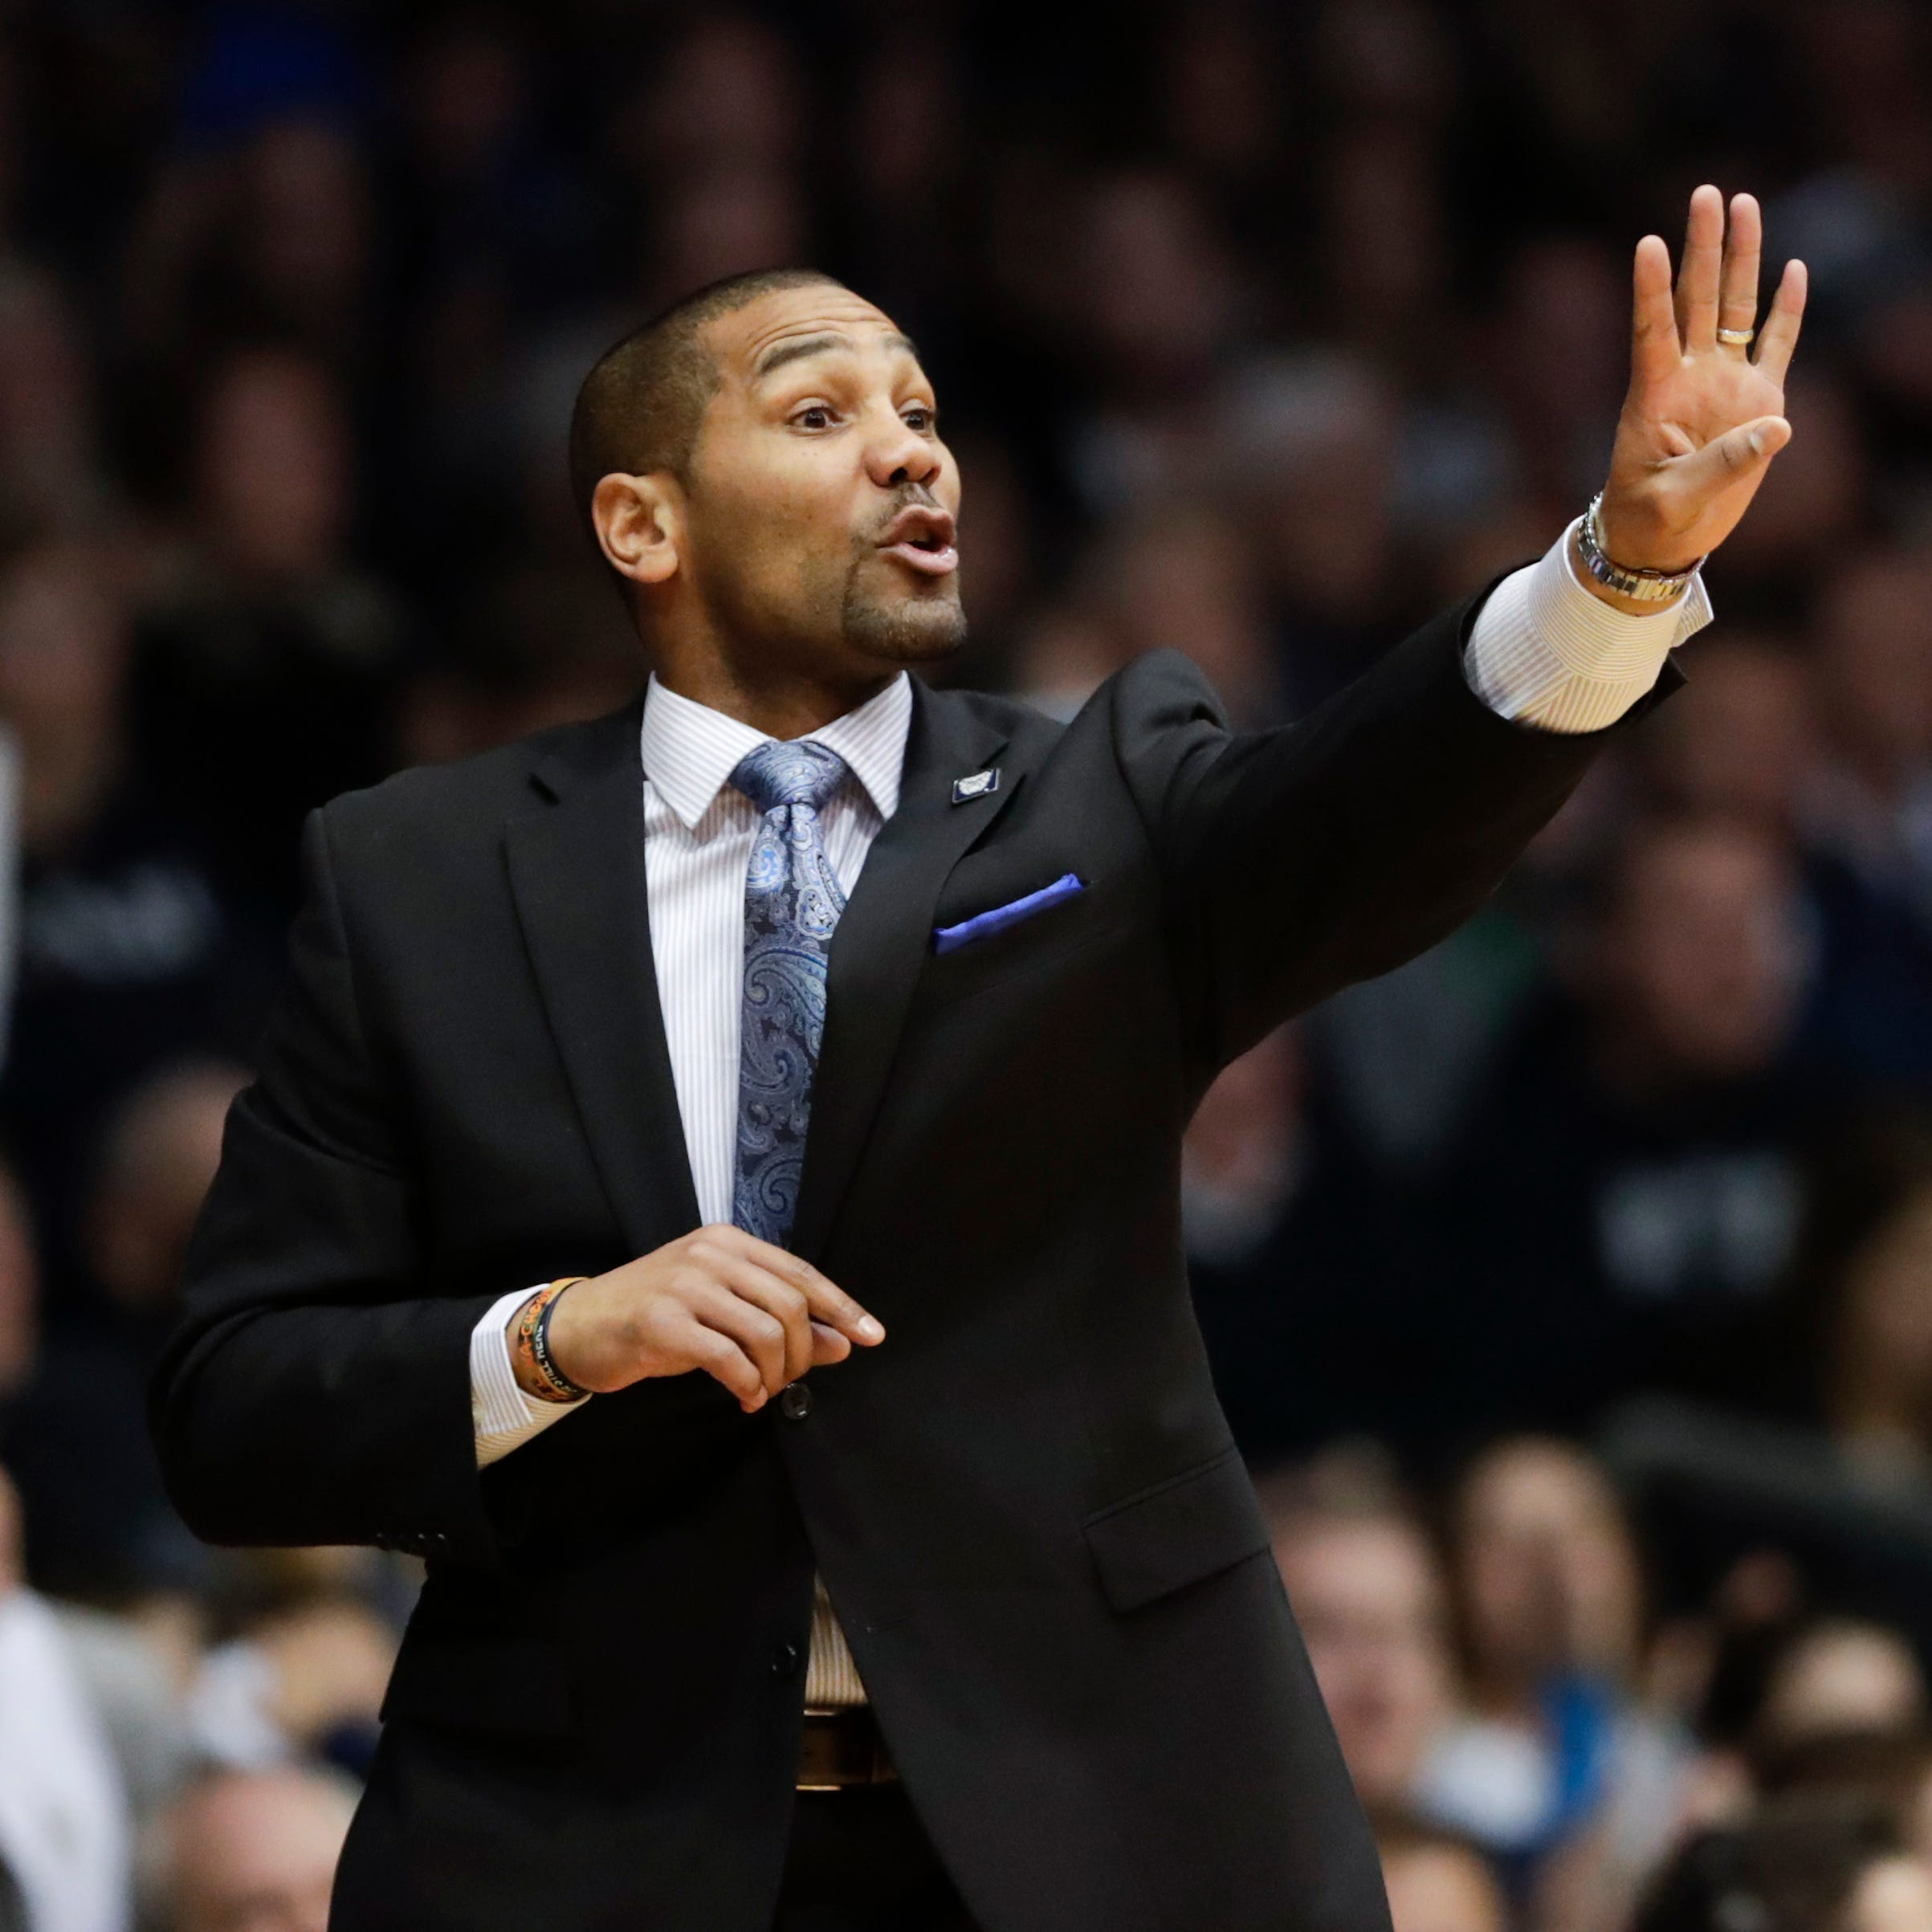 'Basketball savant' LaVall Jordan helped fuel Michigan's rise under John Beilein